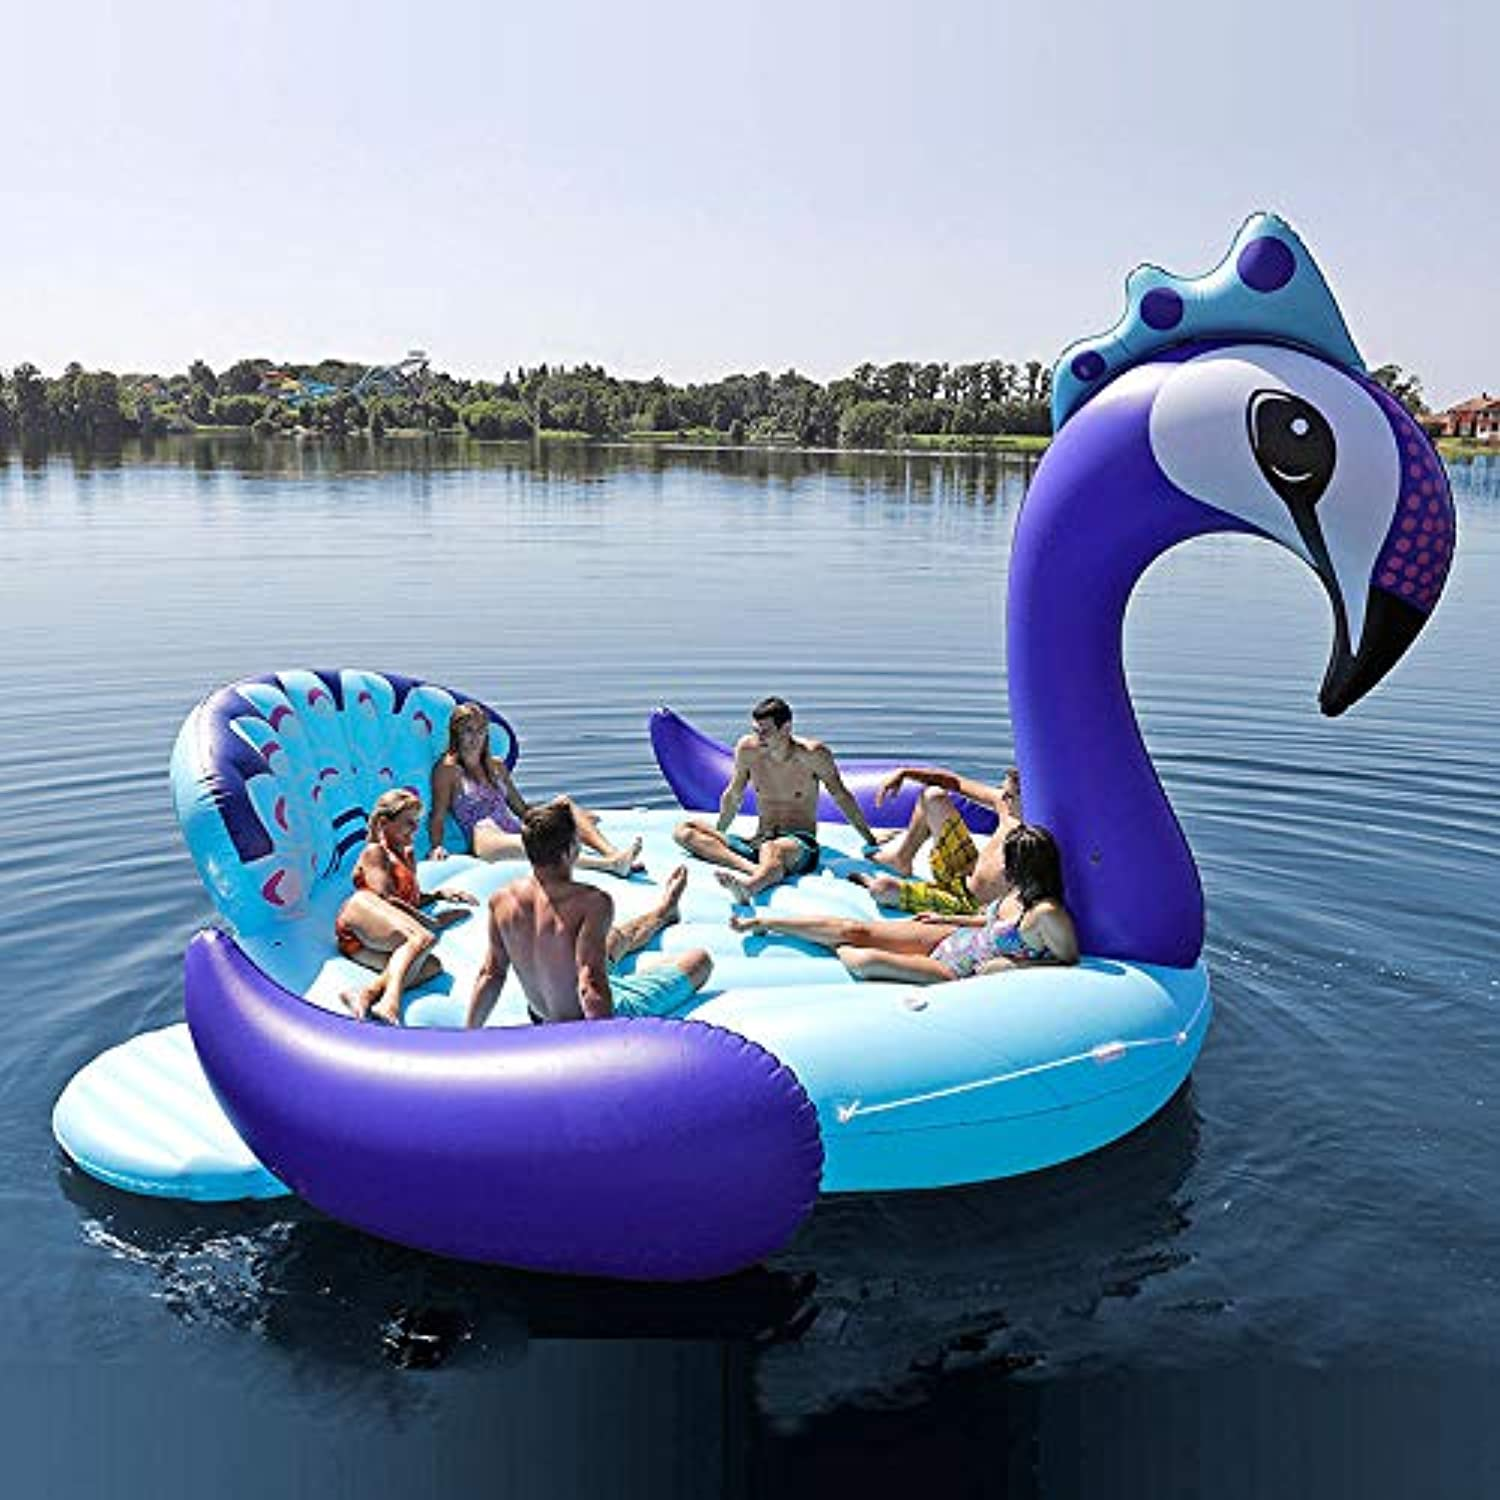 Inflatable Giant Peacock Pool Float Island Swimming Pool Lake Beach Party Floating Boat Adult Water Toys Air Mattresses